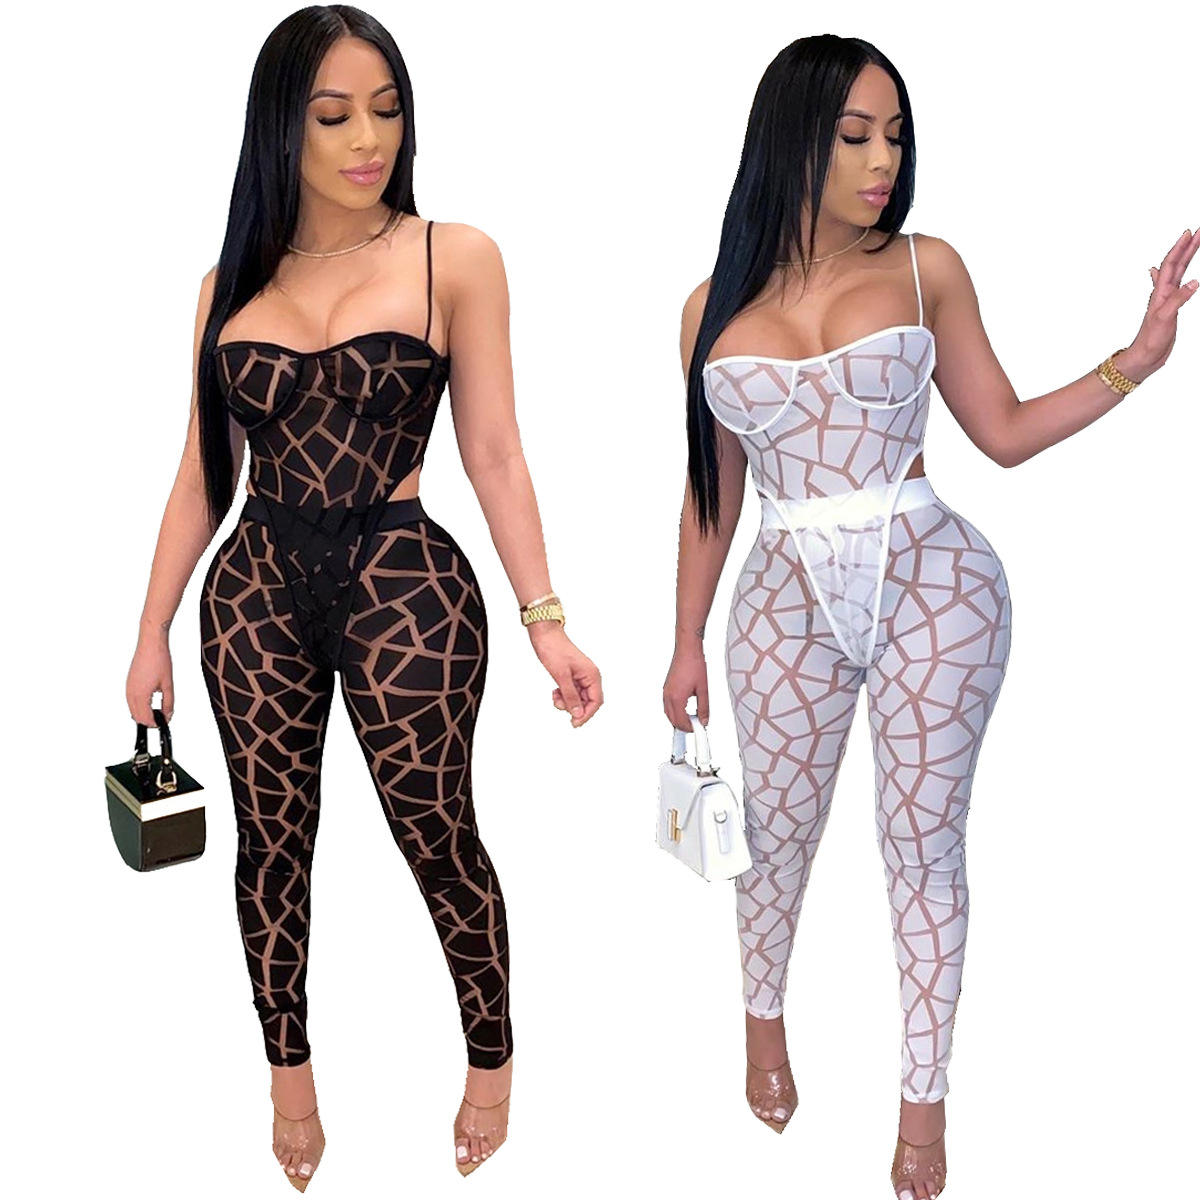 2020 Fashion 2 piece Stacked Leggings Sexy Lace Womens 2 Piece Outfit Two Piece Set Women Stacked Pants Outfits